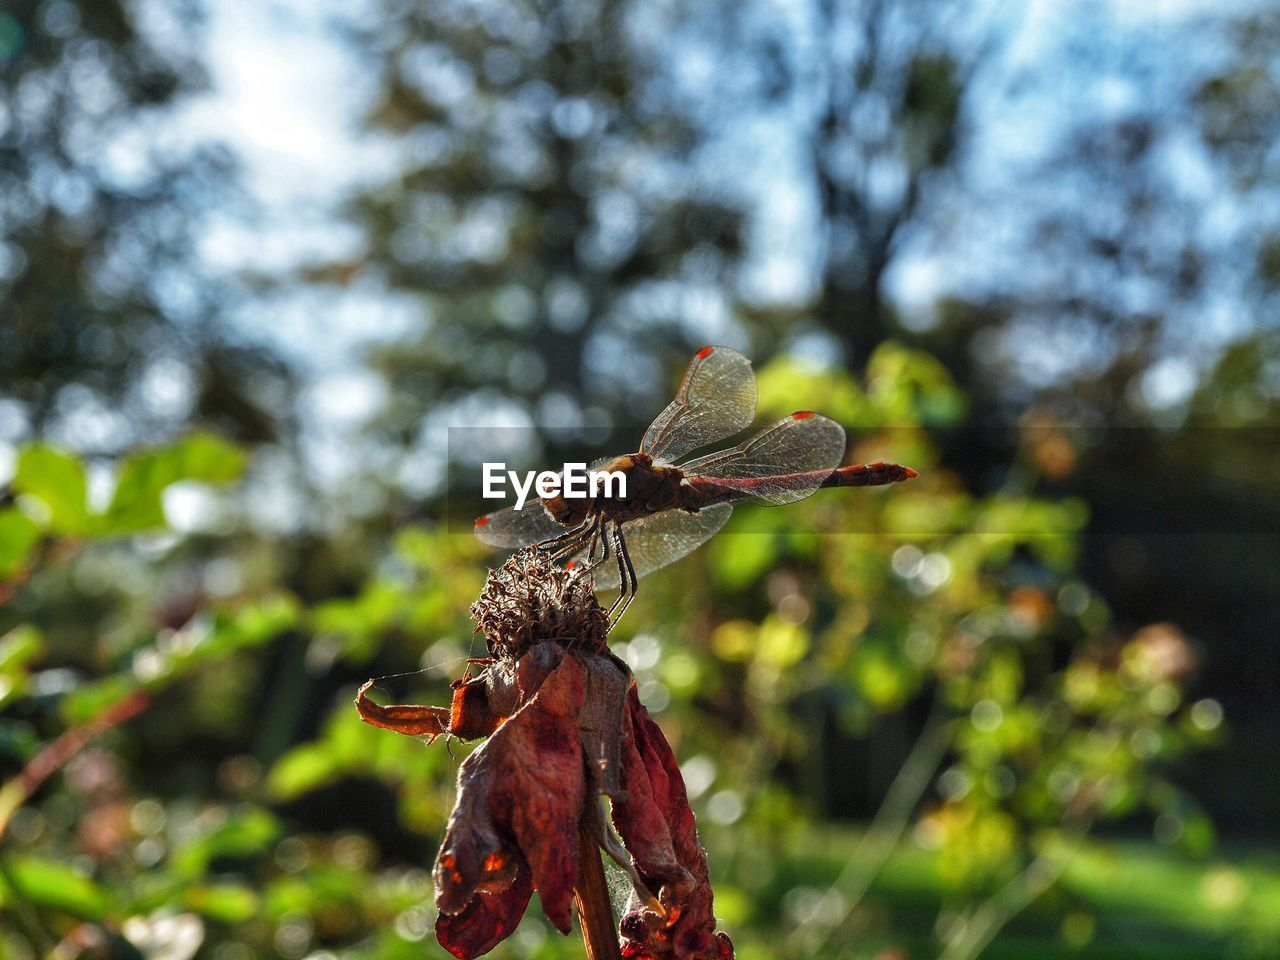 plant, focus on foreground, no people, day, nature, close-up, tree, growth, beauty in nature, leaf, insect, plant part, invertebrate, outdoors, animals in the wild, animal wildlife, dry, vulnerability, fragility, sunlight, animal wing